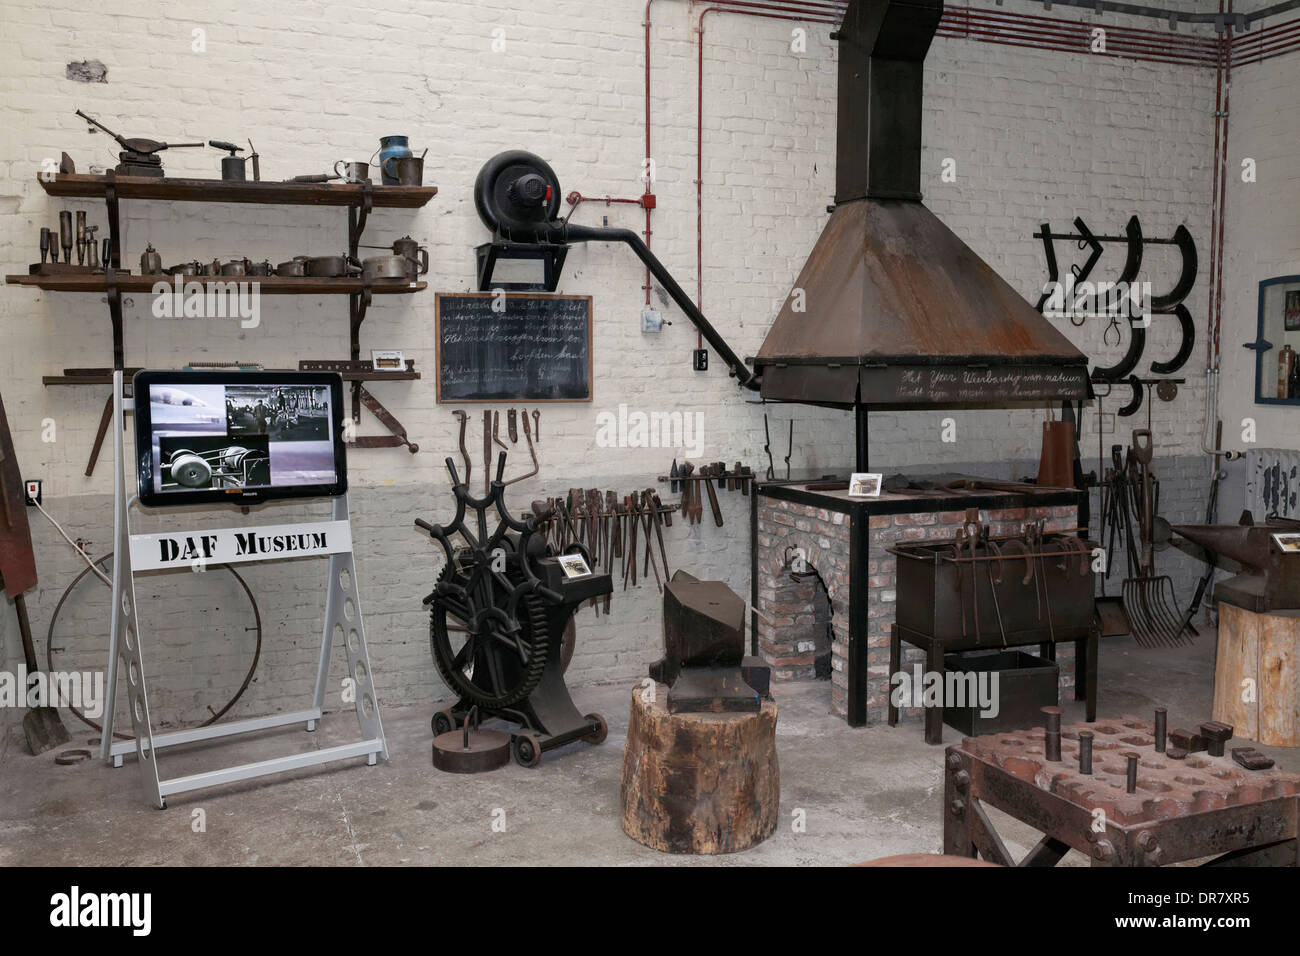 Historic forge from 1928, DAF Museum, Eindhoven, North Brabant, Netherlands - Stock Image